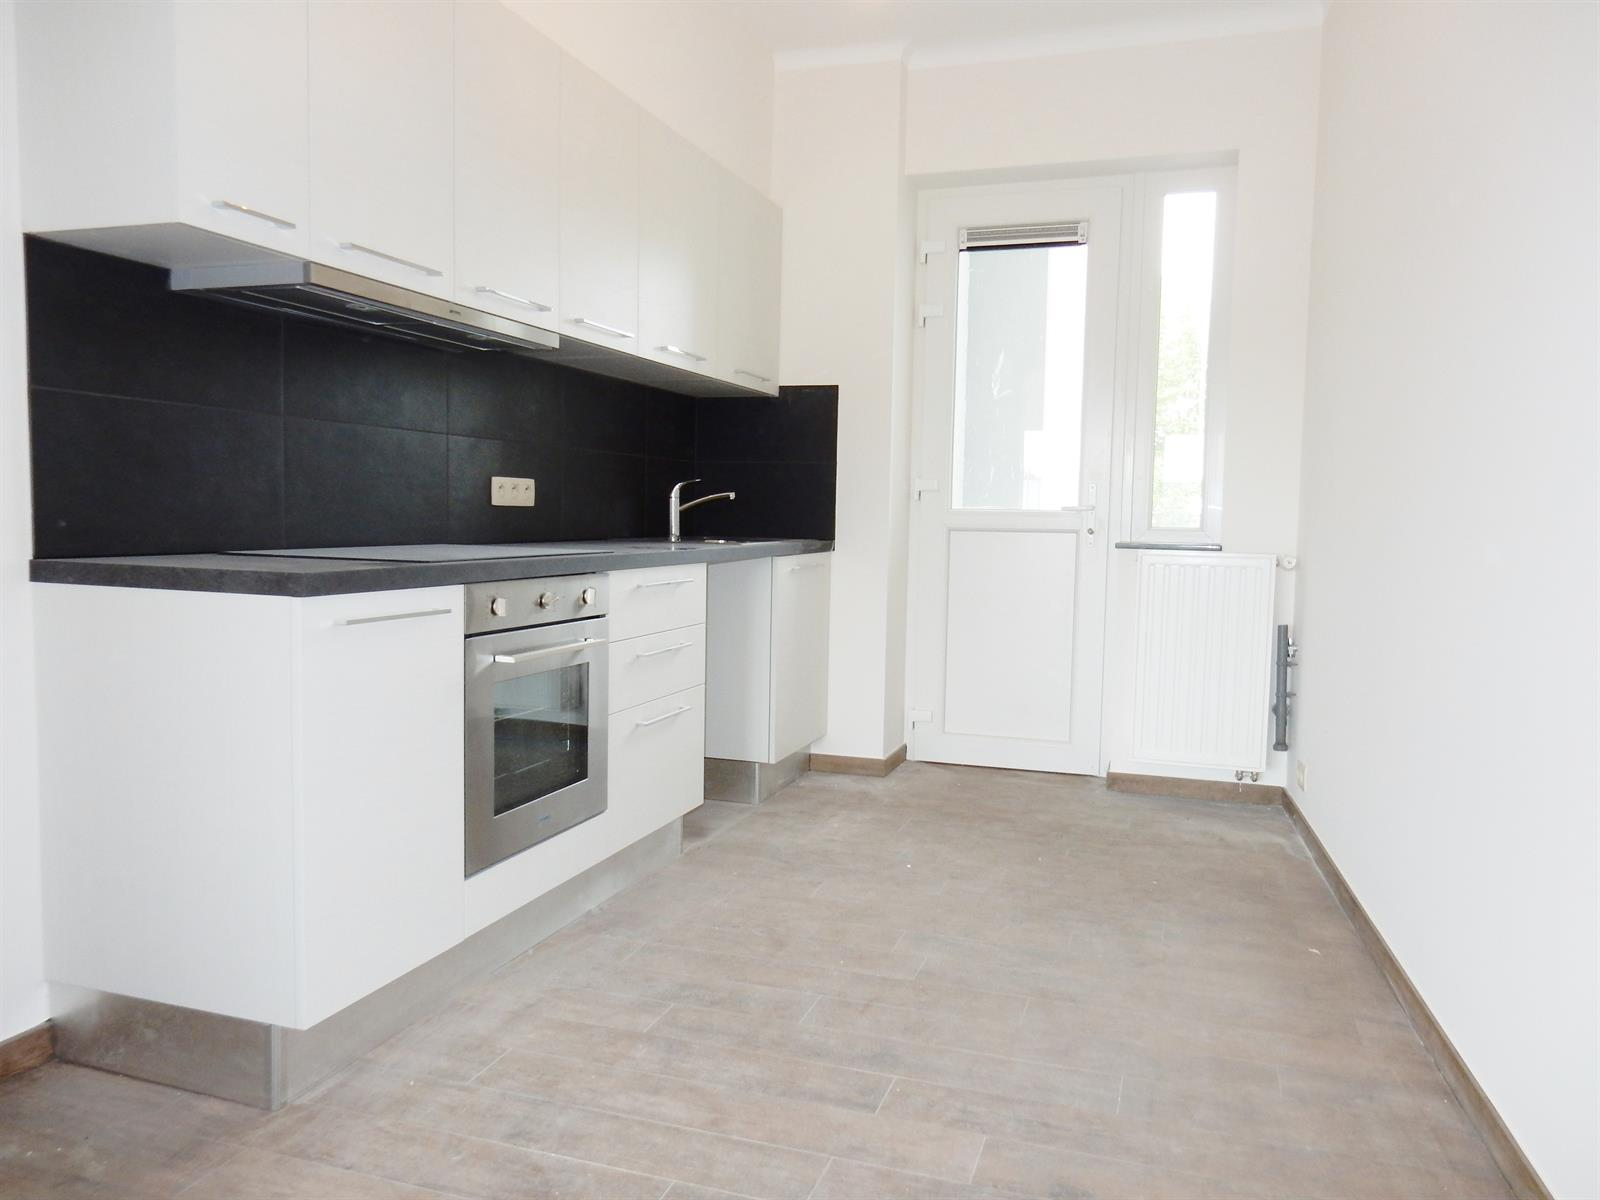 Appartement - Forest - #3862880-2